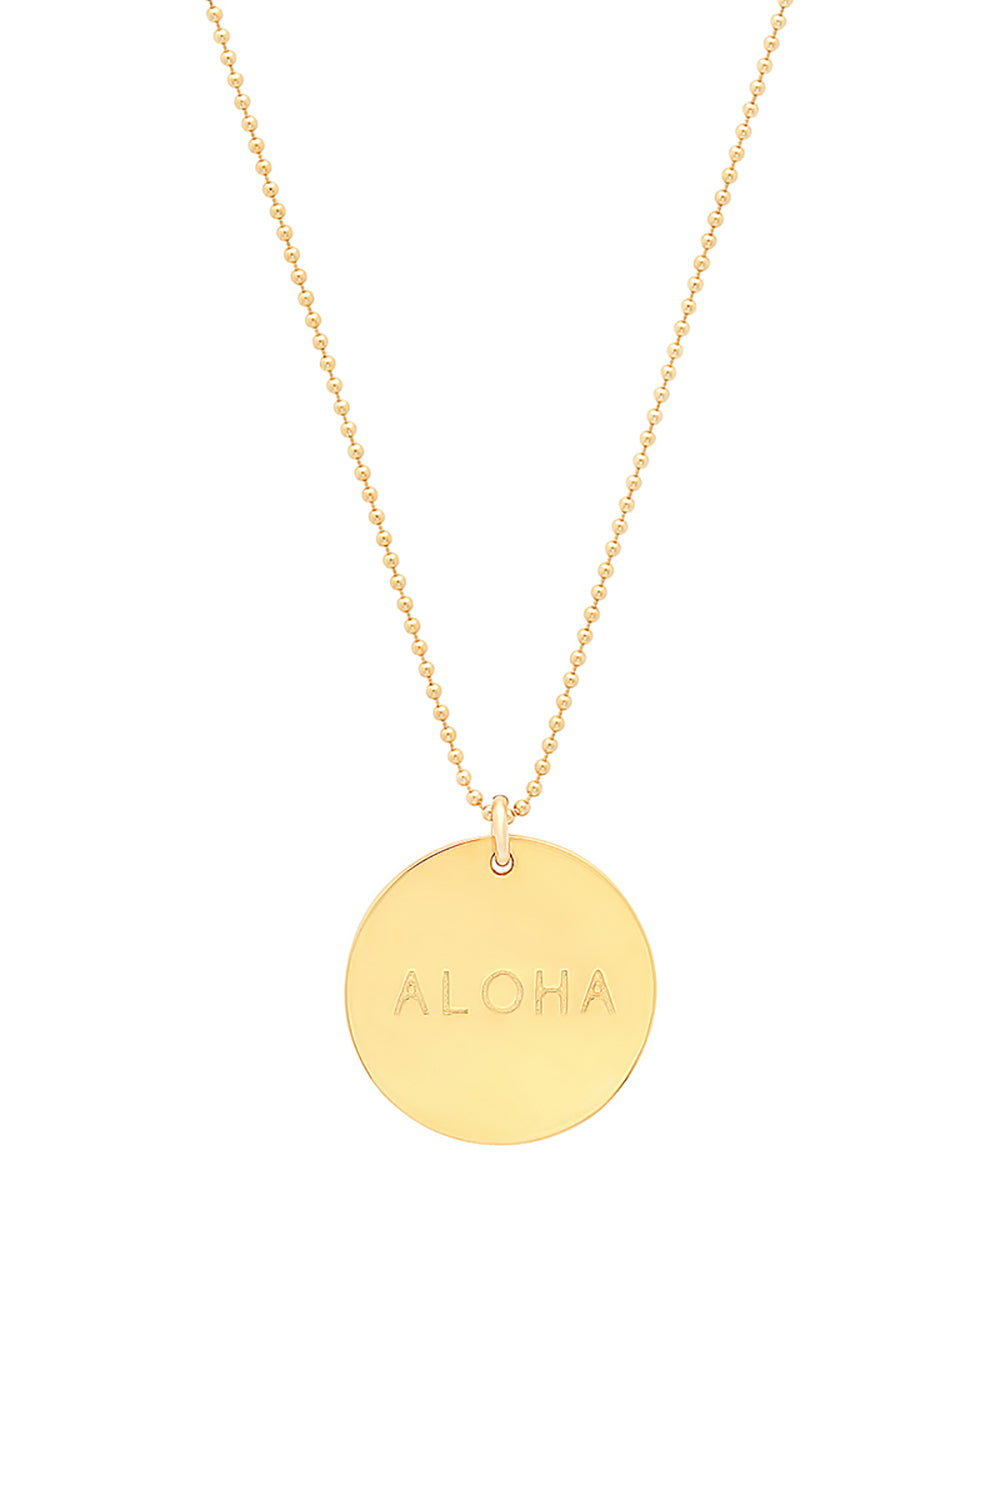 BYCHARI Aloha Charm Necklace in Gold Fill